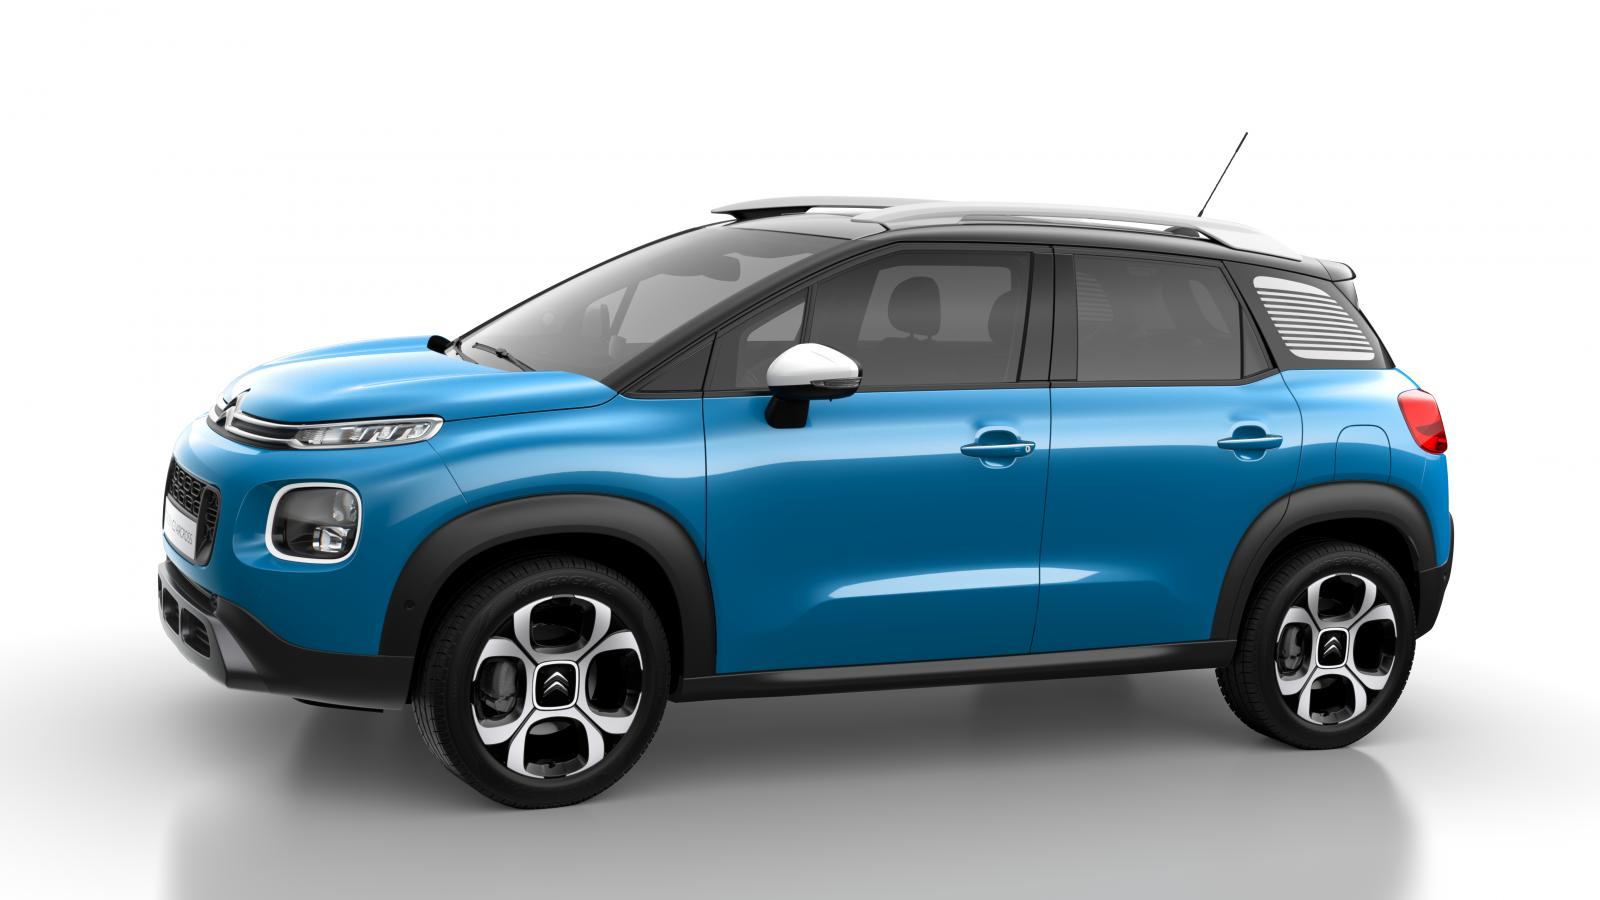 Compacte SUV C3 Aircross - Breathing Blue